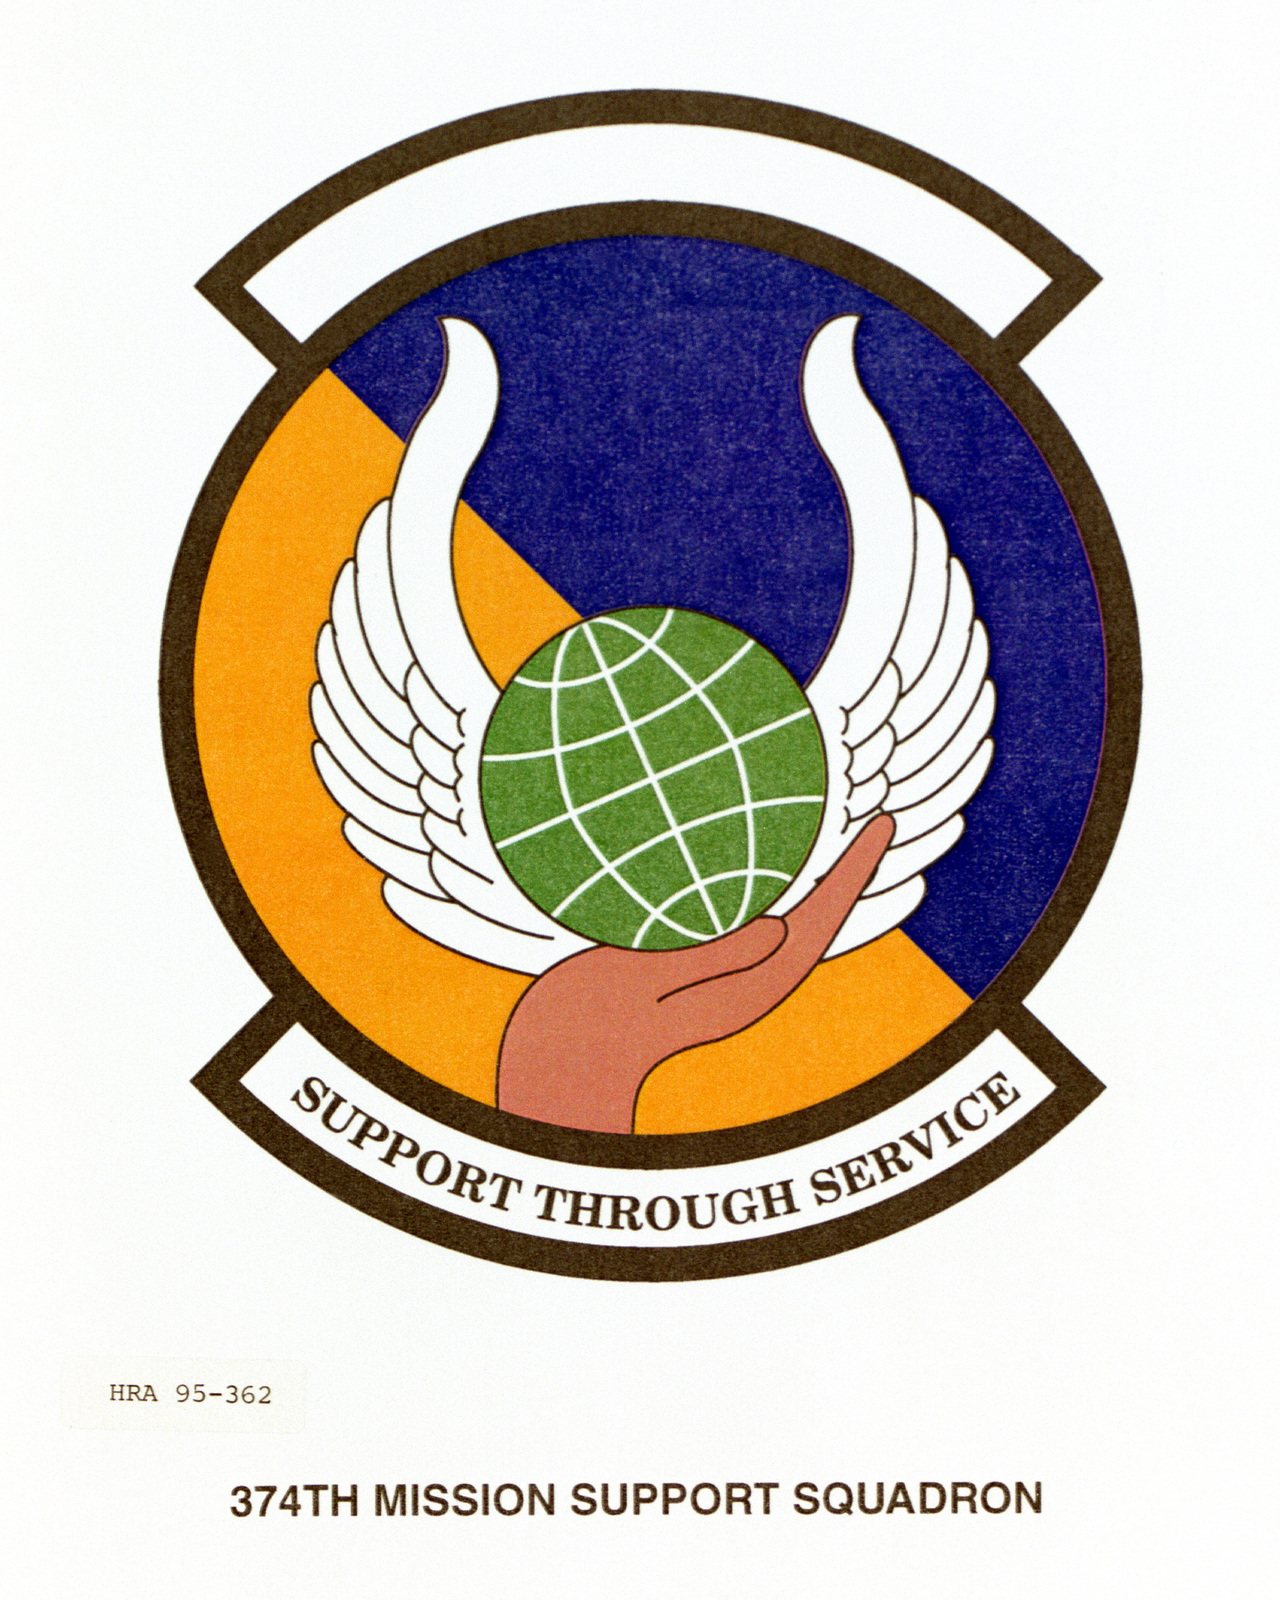 Approved Insignia for the 374th Mission Support Squadron Exact Date Shot Unknown